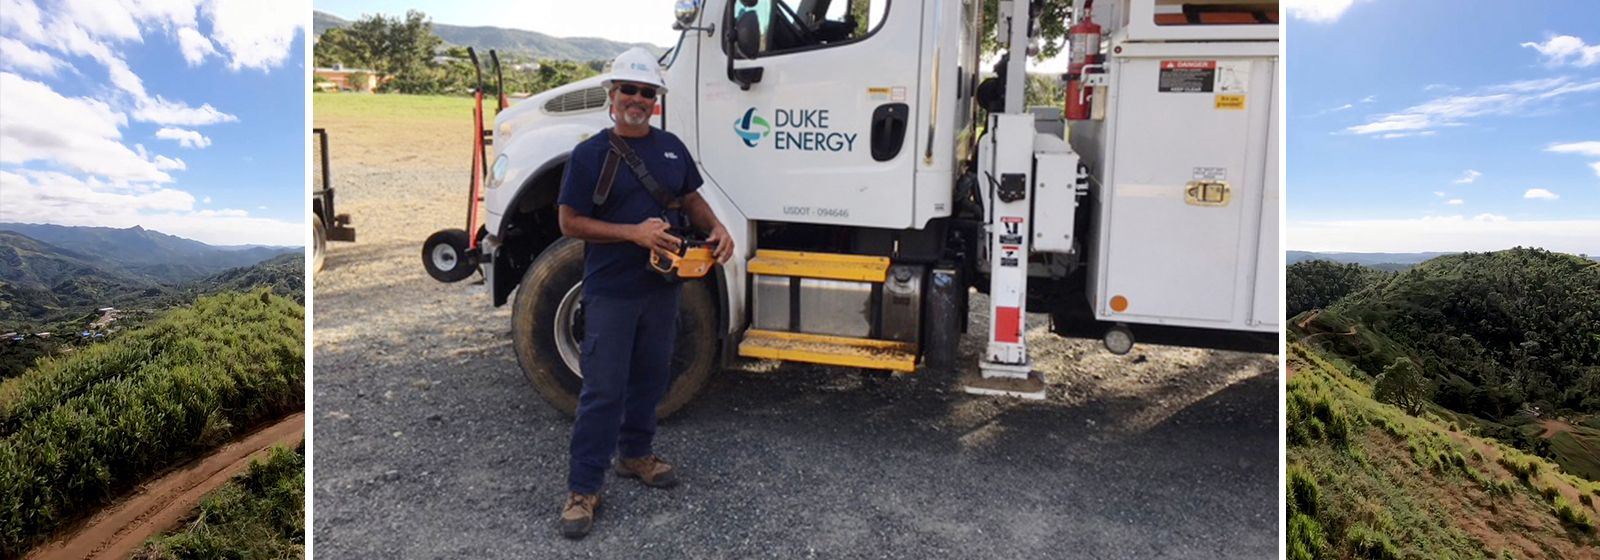 After Hurricane Maria, duty called him home to help